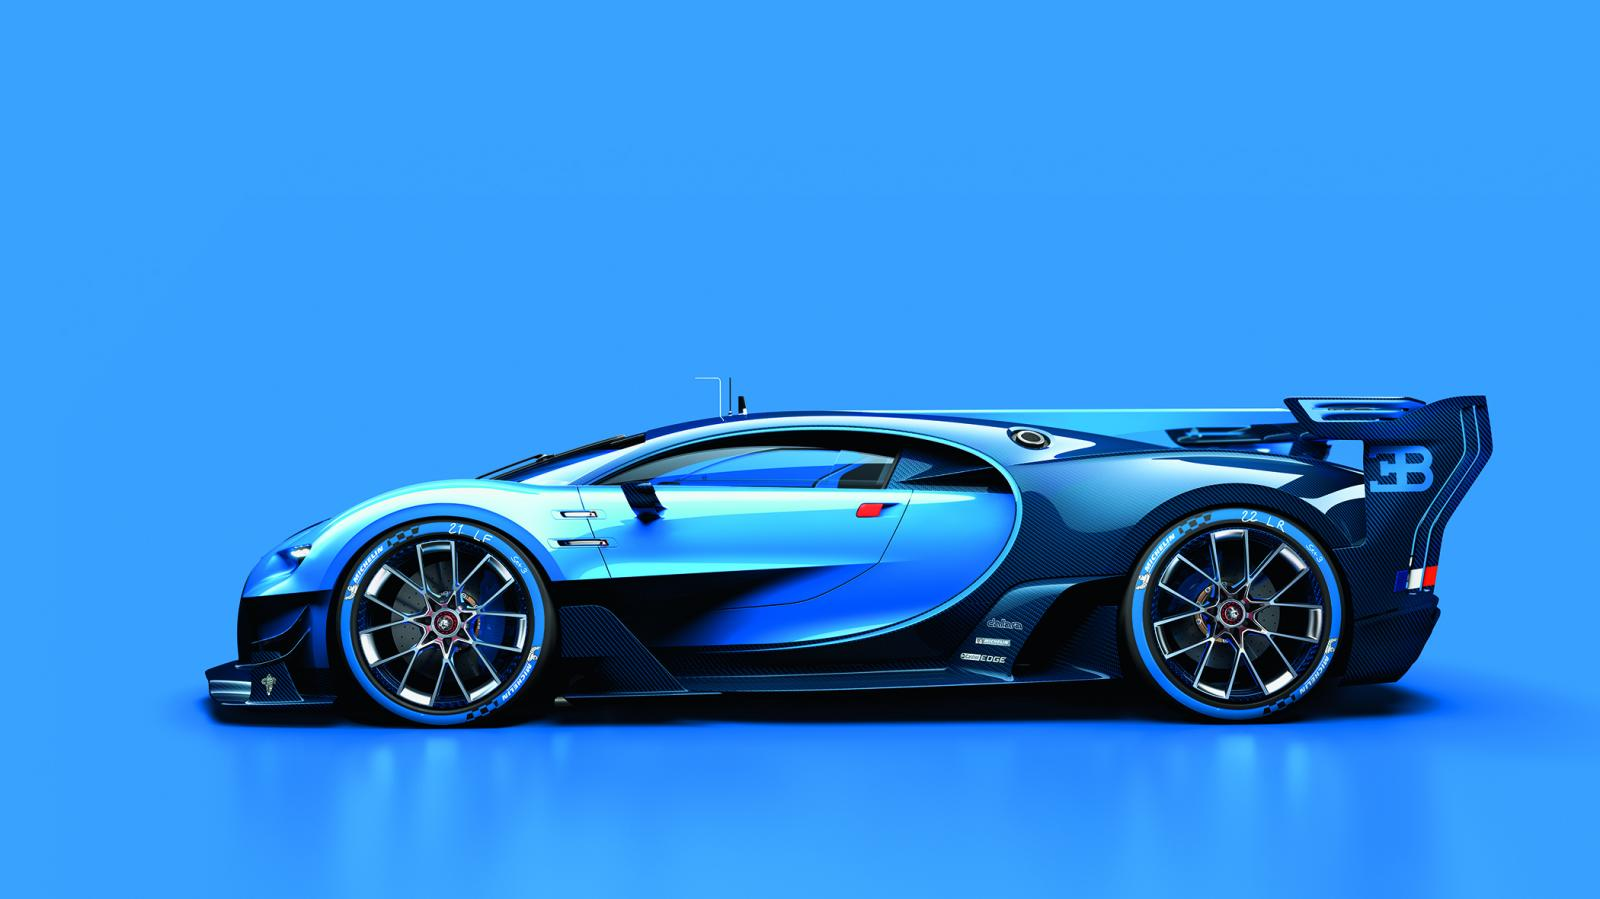 Bugatti Veyron Super Sport Hd Wallpaper Is The Bugatti Vision Gran Turismo The Herald Of The Chiron